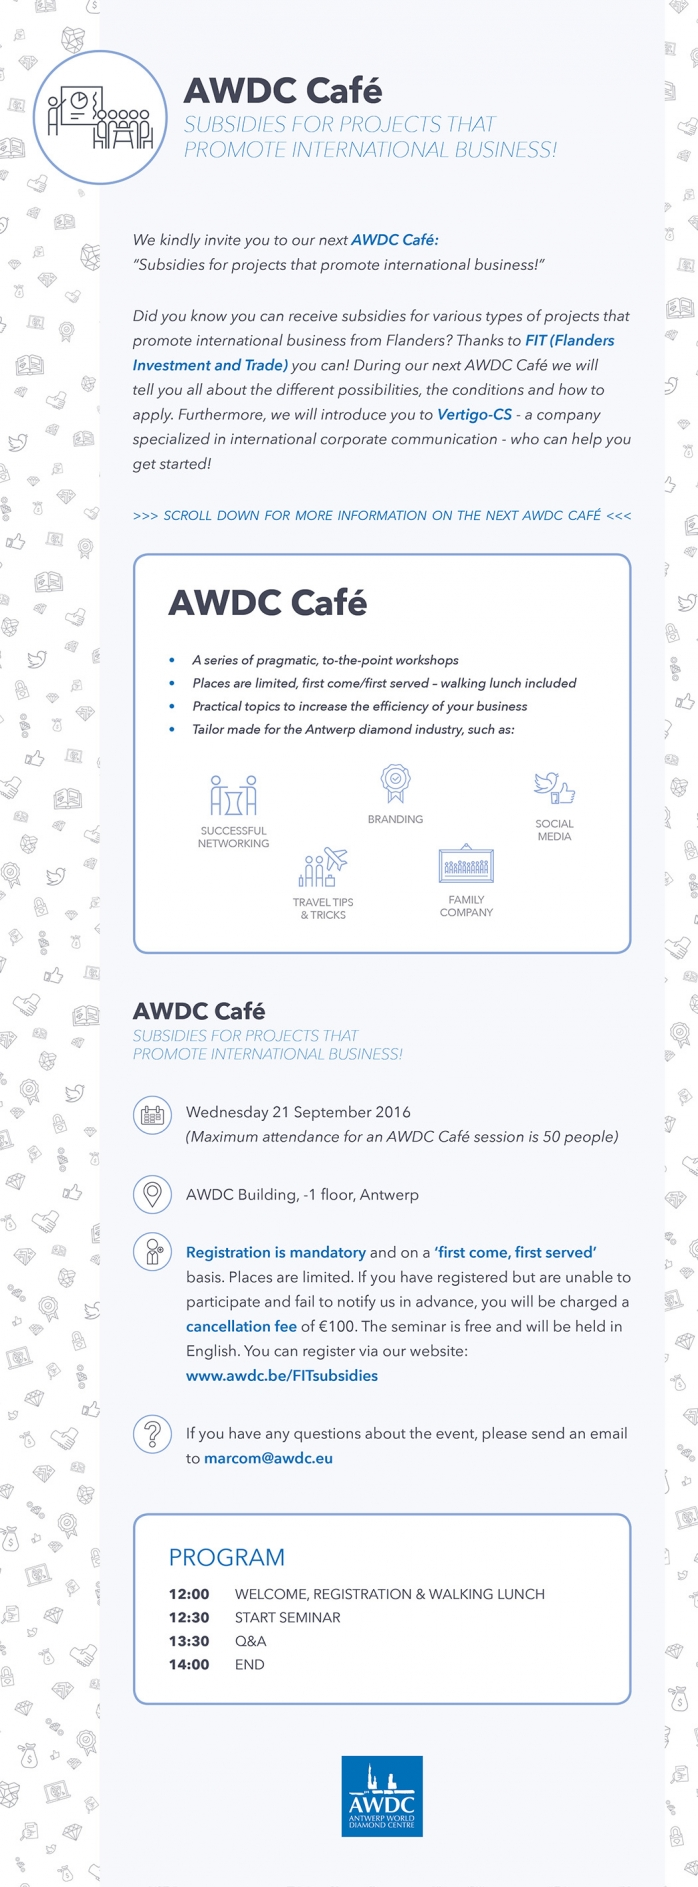 AWDC Café: Subsidies for projects that promote international